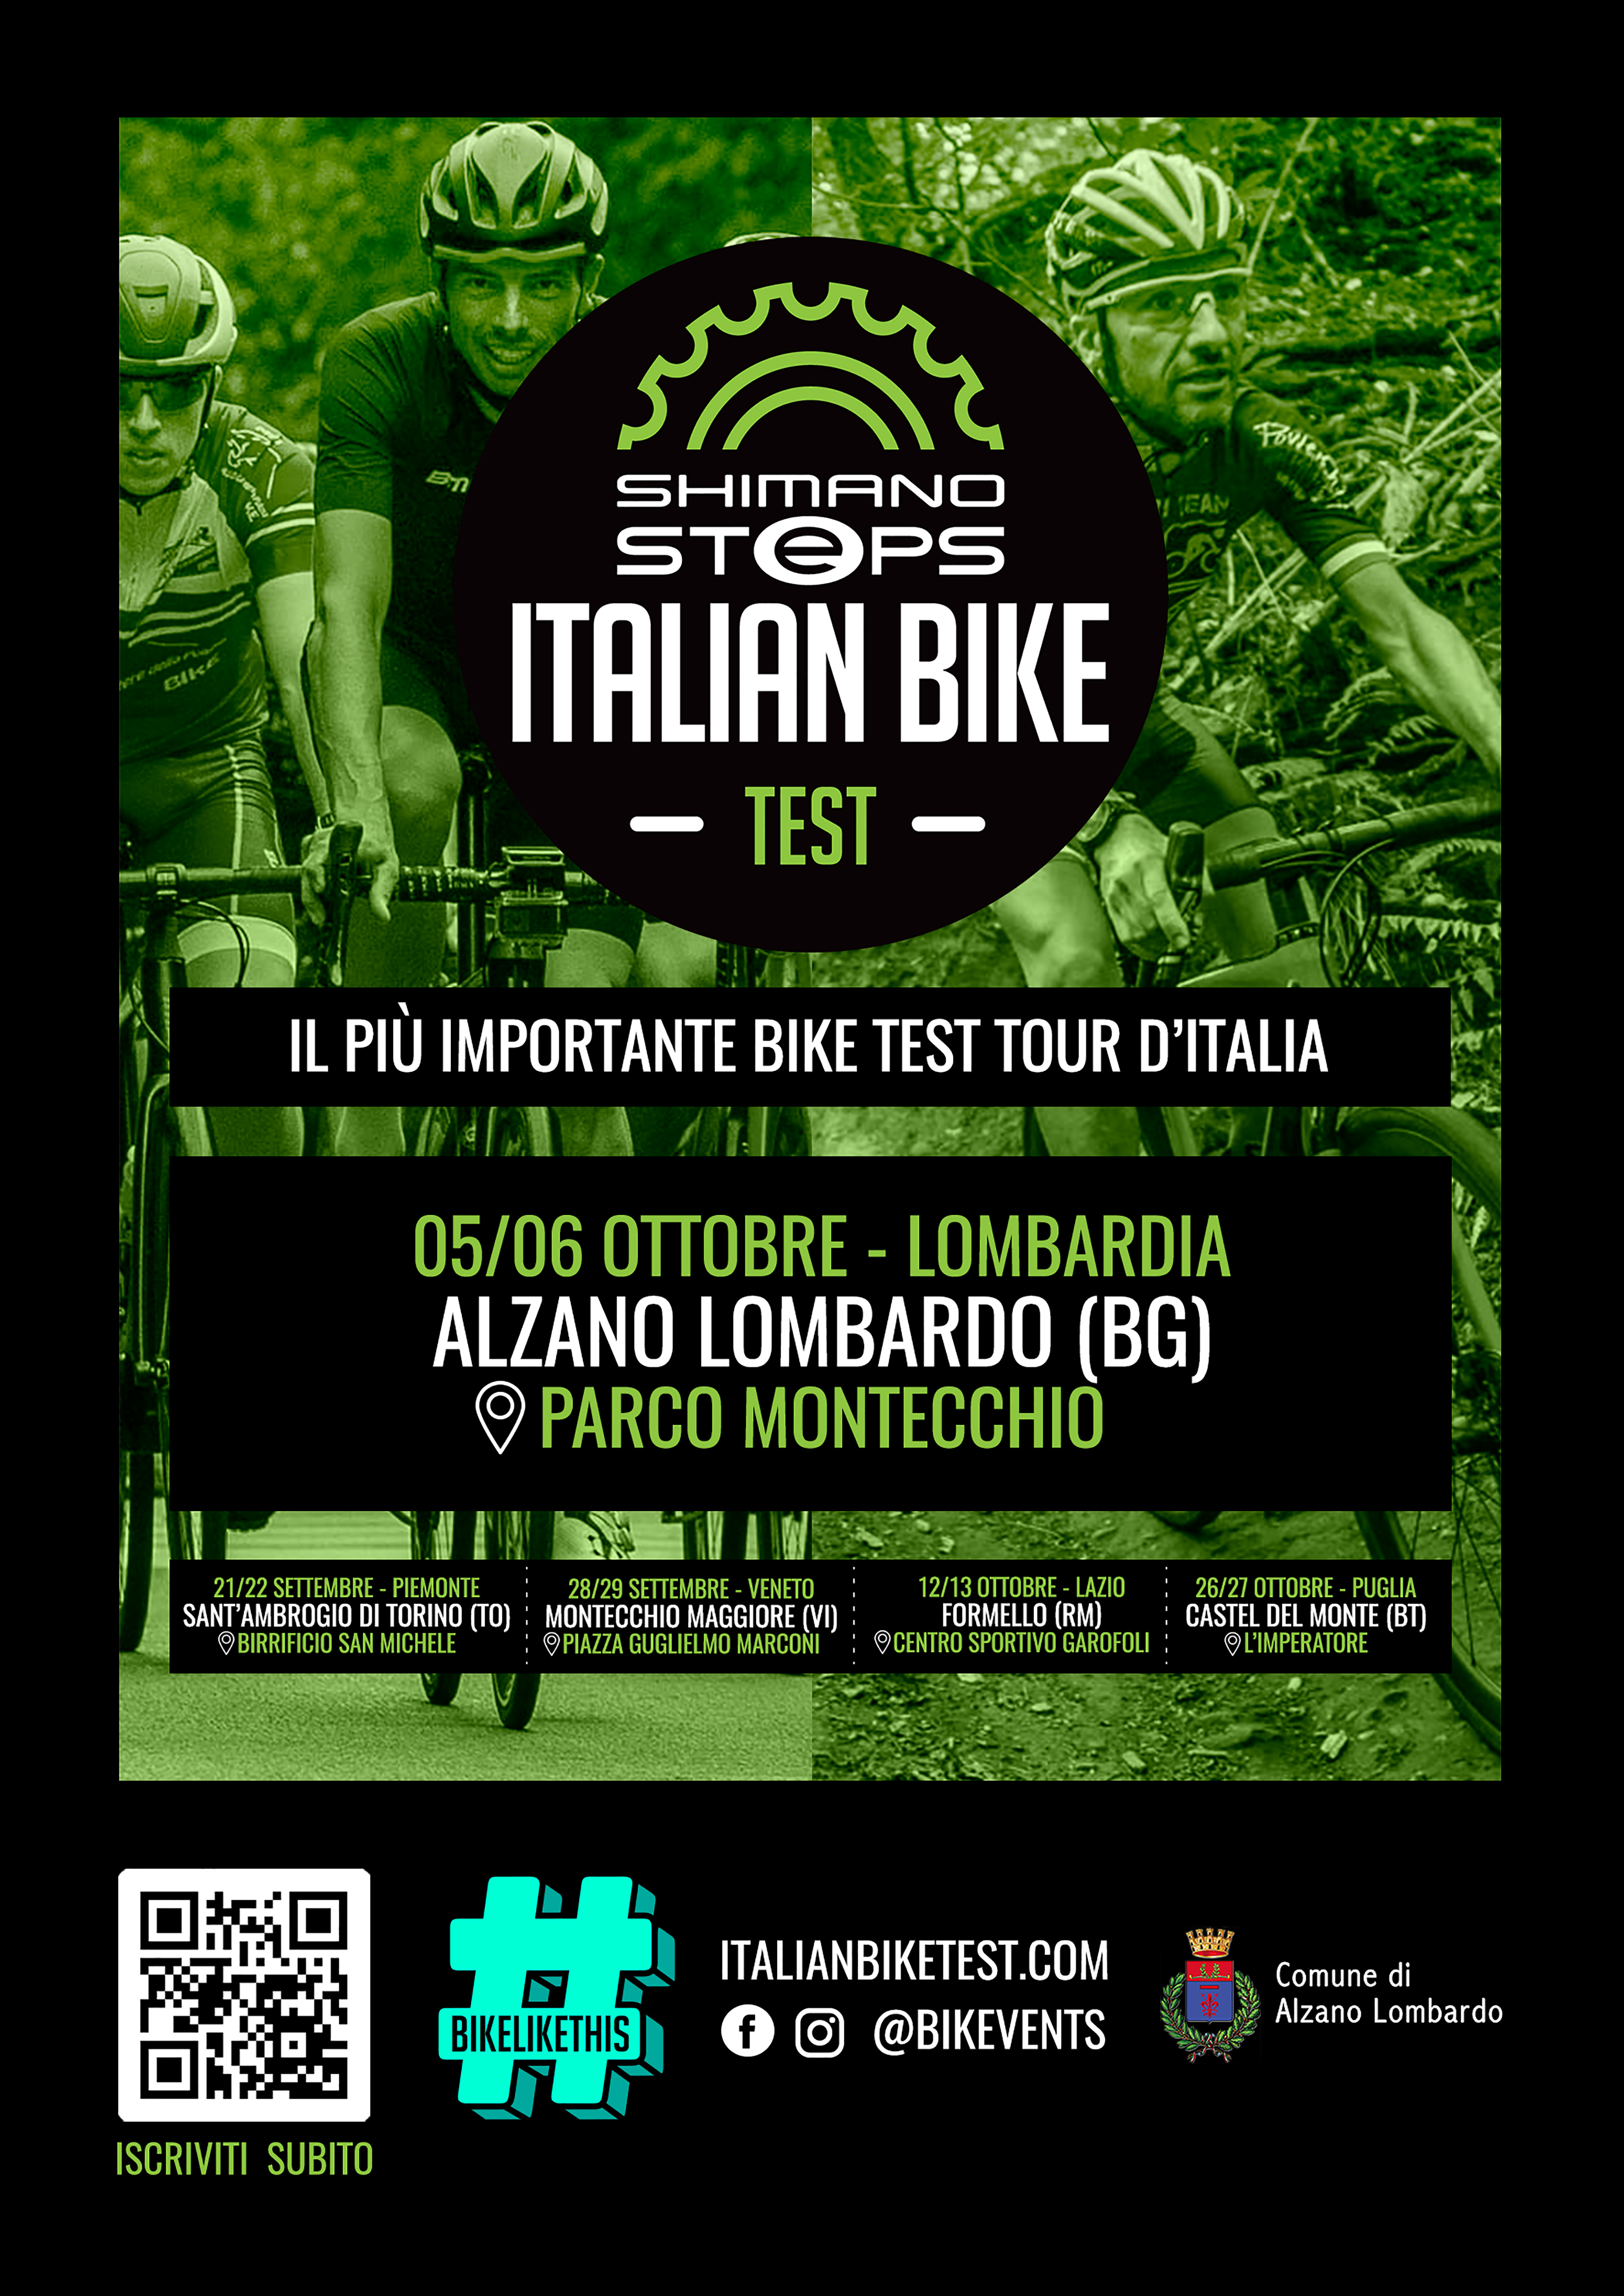 A3_BIKE_EVENTS_ALZANO_LOMBARDO